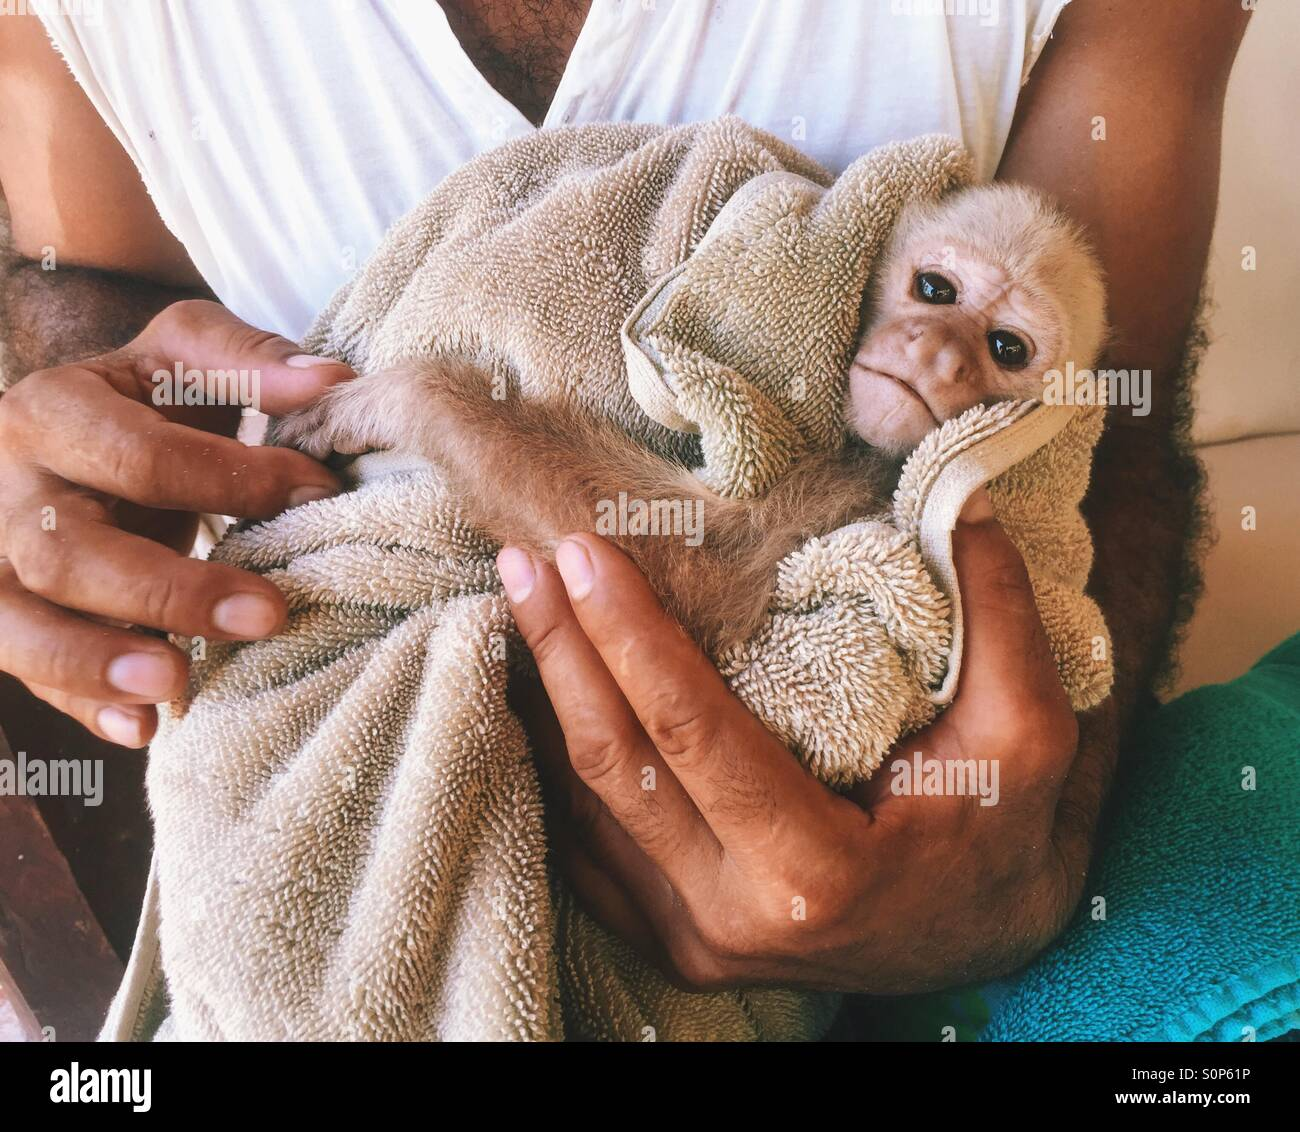 Hurt monkey in a towel - Stock Image